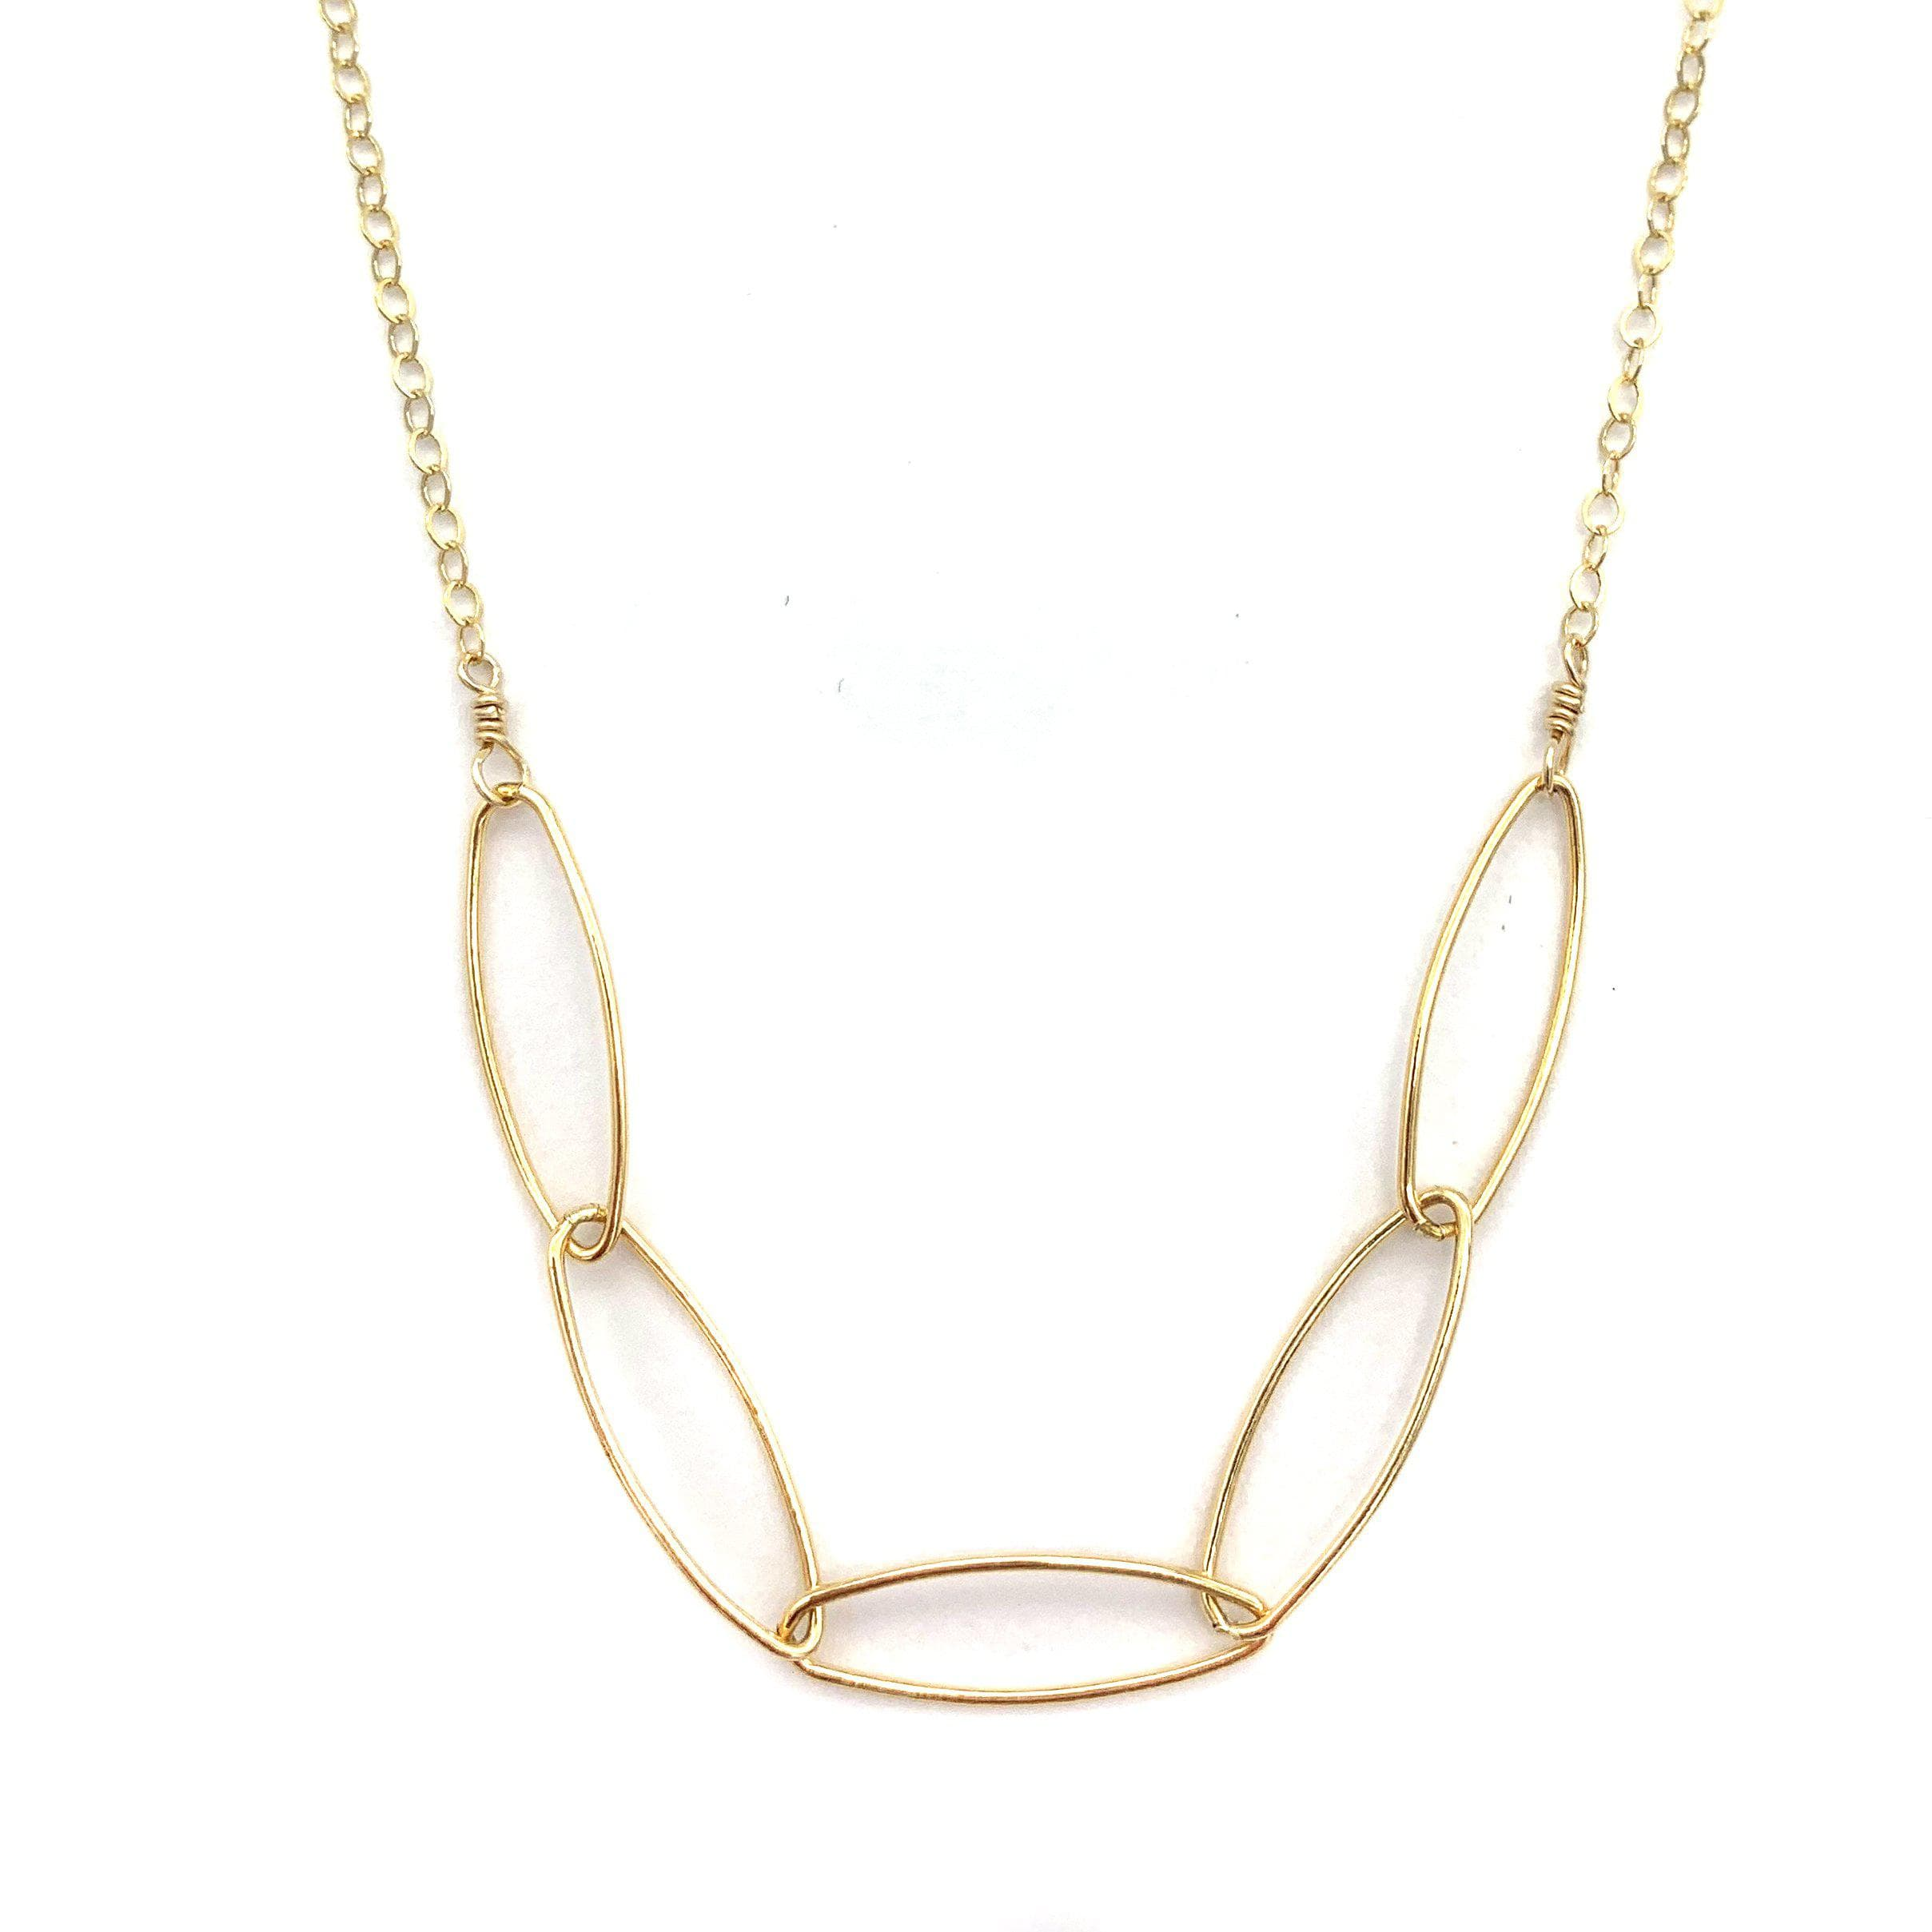 Diamond Cut Five Oval Necklace, Necklaces, adorn512, adorn512